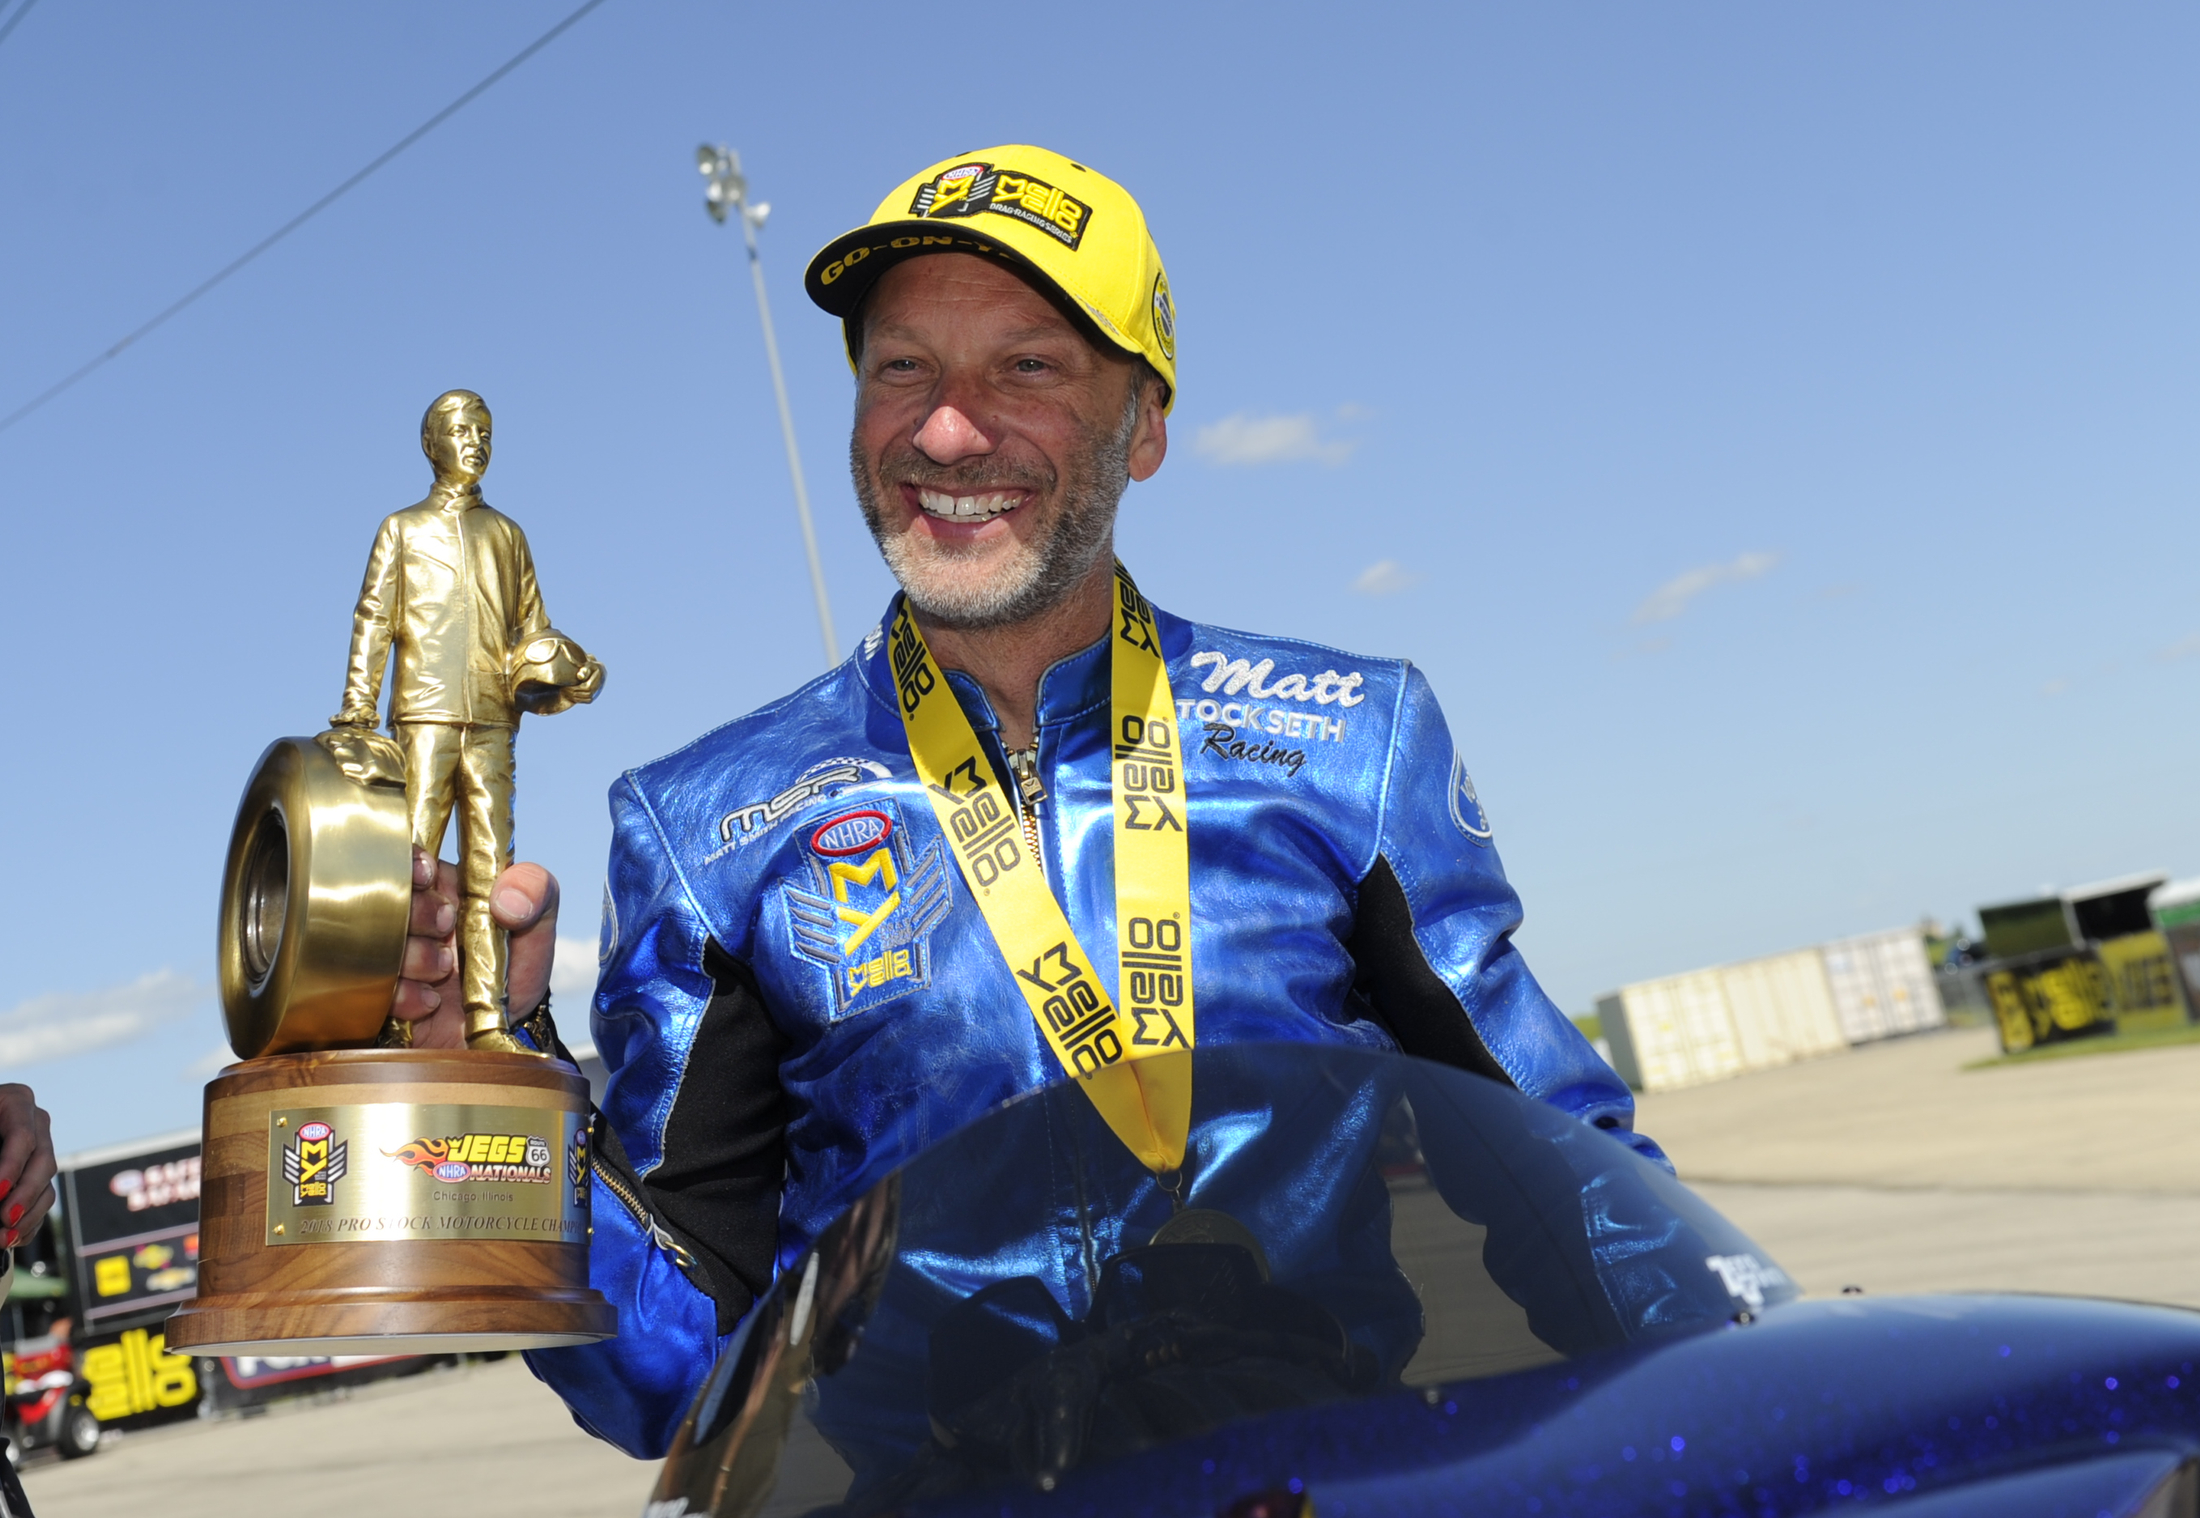 Pro Stock Motorcycle rider Matt Smith after winning the Wally on Sunday at the Route 66 NHRA Nationals